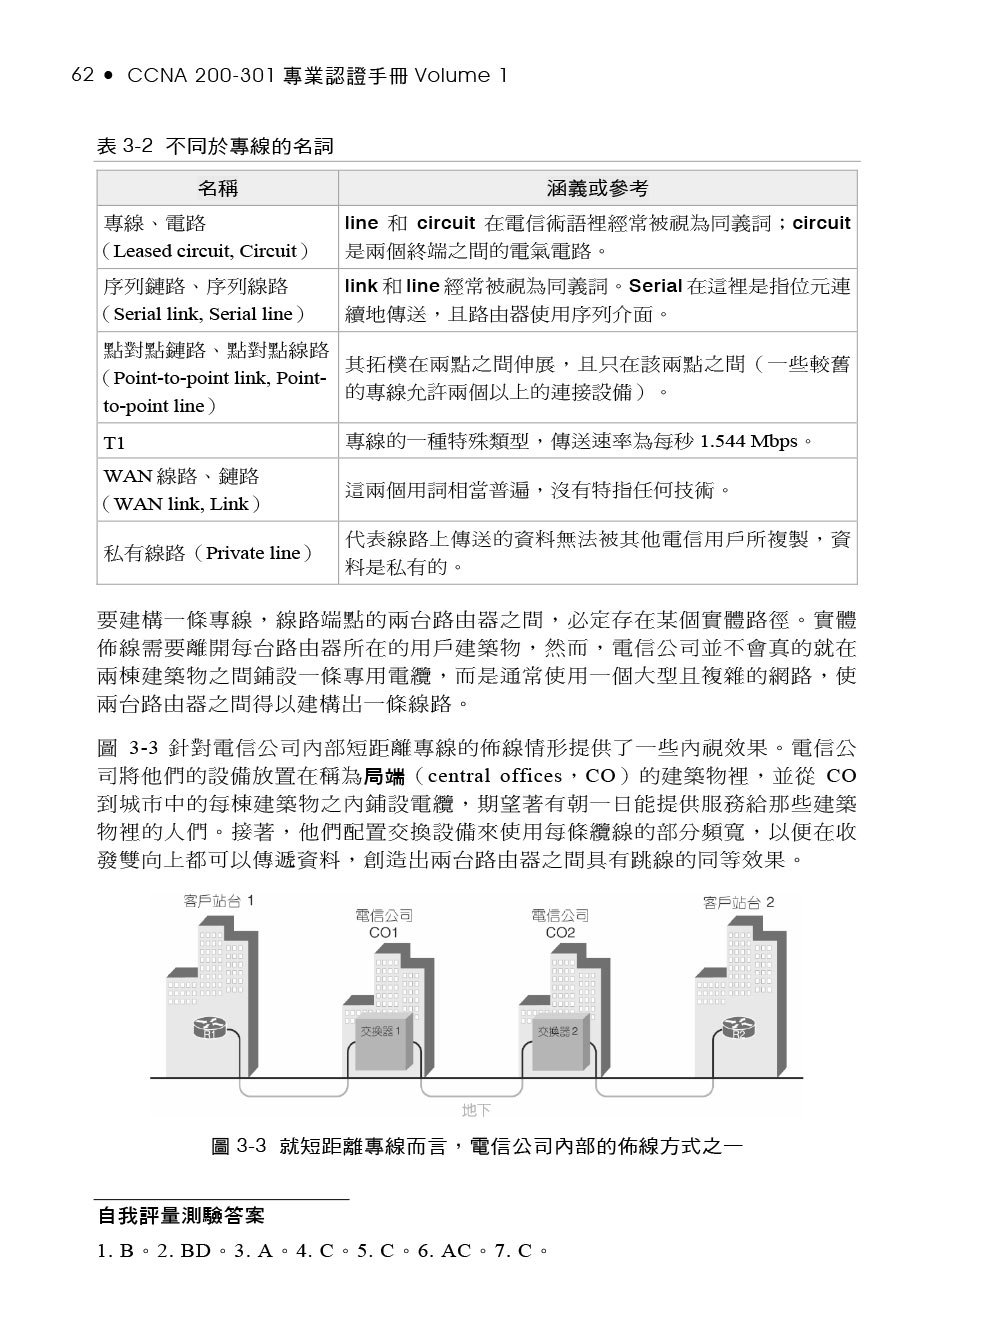 CCNA 200-301 專業認證手冊, Volume 1 (CCNA 200-301 Official Cert Guide, Volume 1)-preview-5